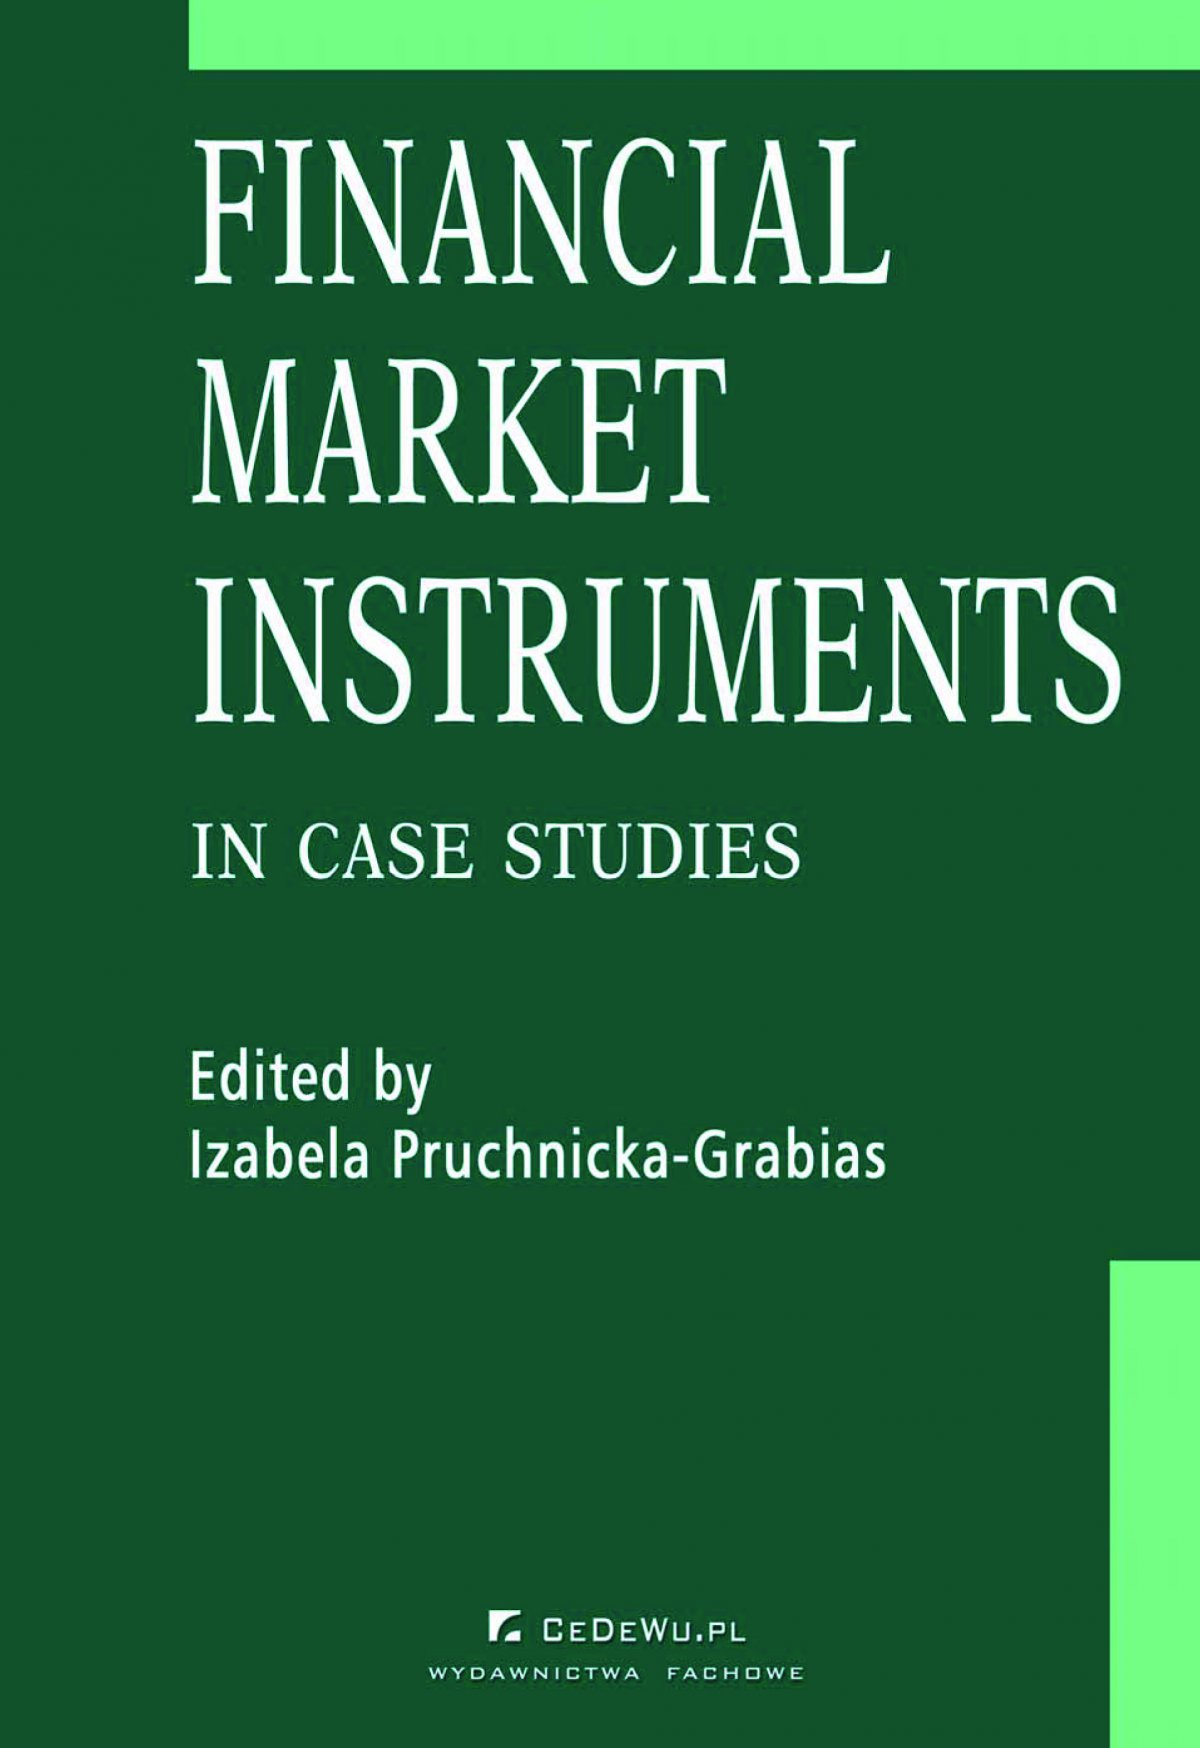 Financial market instruments in case studies. Chapter 3. Foreign Exchange Forward as an OTC Derivatives Market Instrument – Iwona Piekunko-Mantiuk - Ebook (Książka PDF) do pobrania w formacie PDF